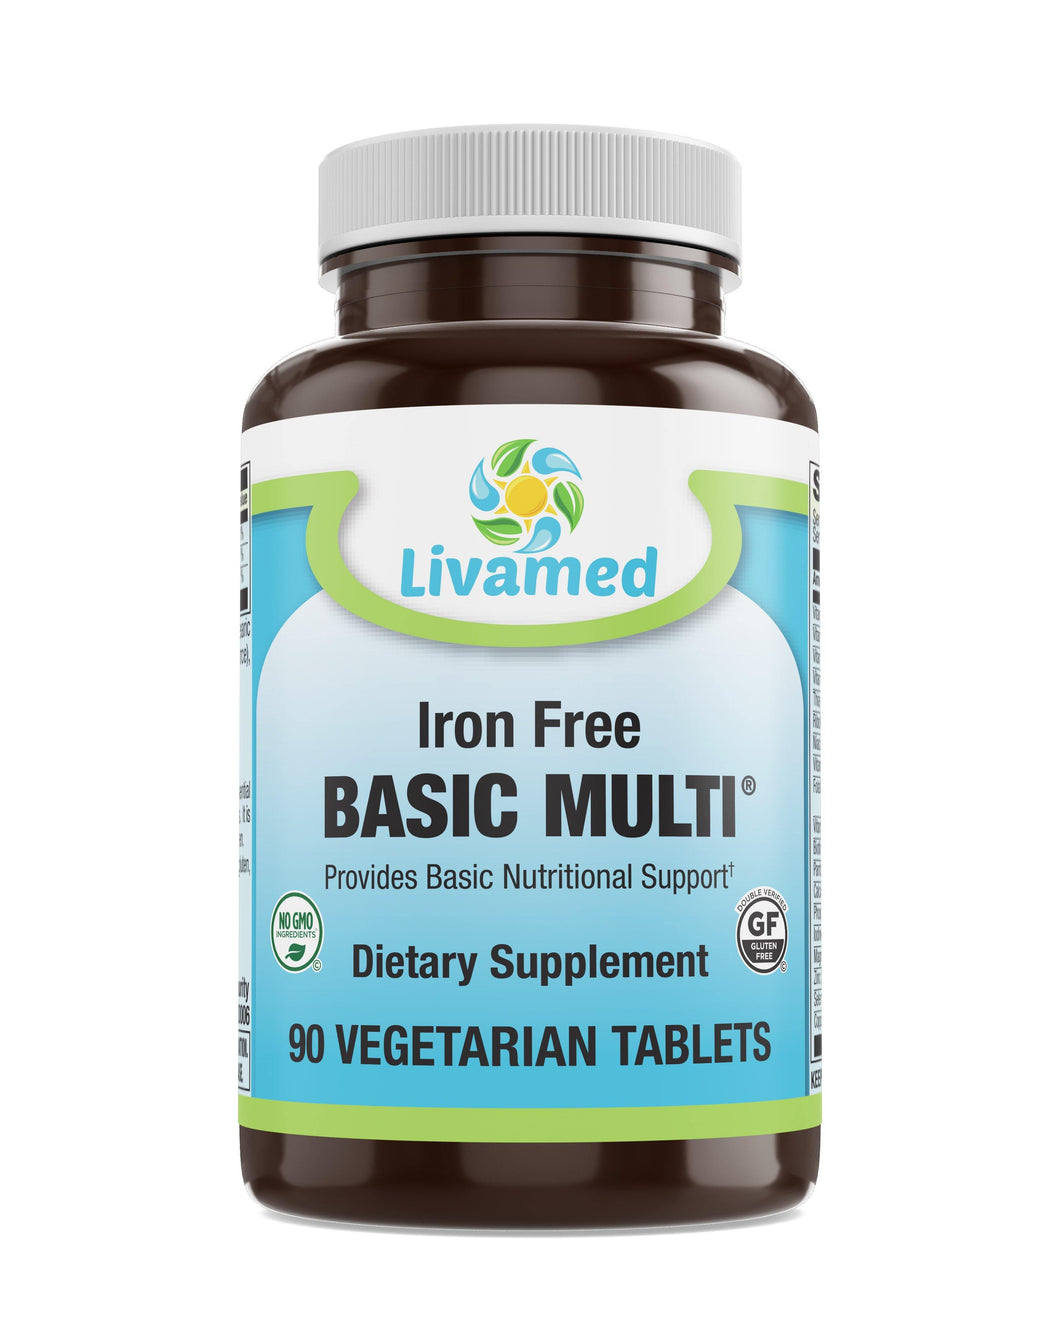 Livamed - Iron Free Basic Multi® Veg Tabs 90 Count